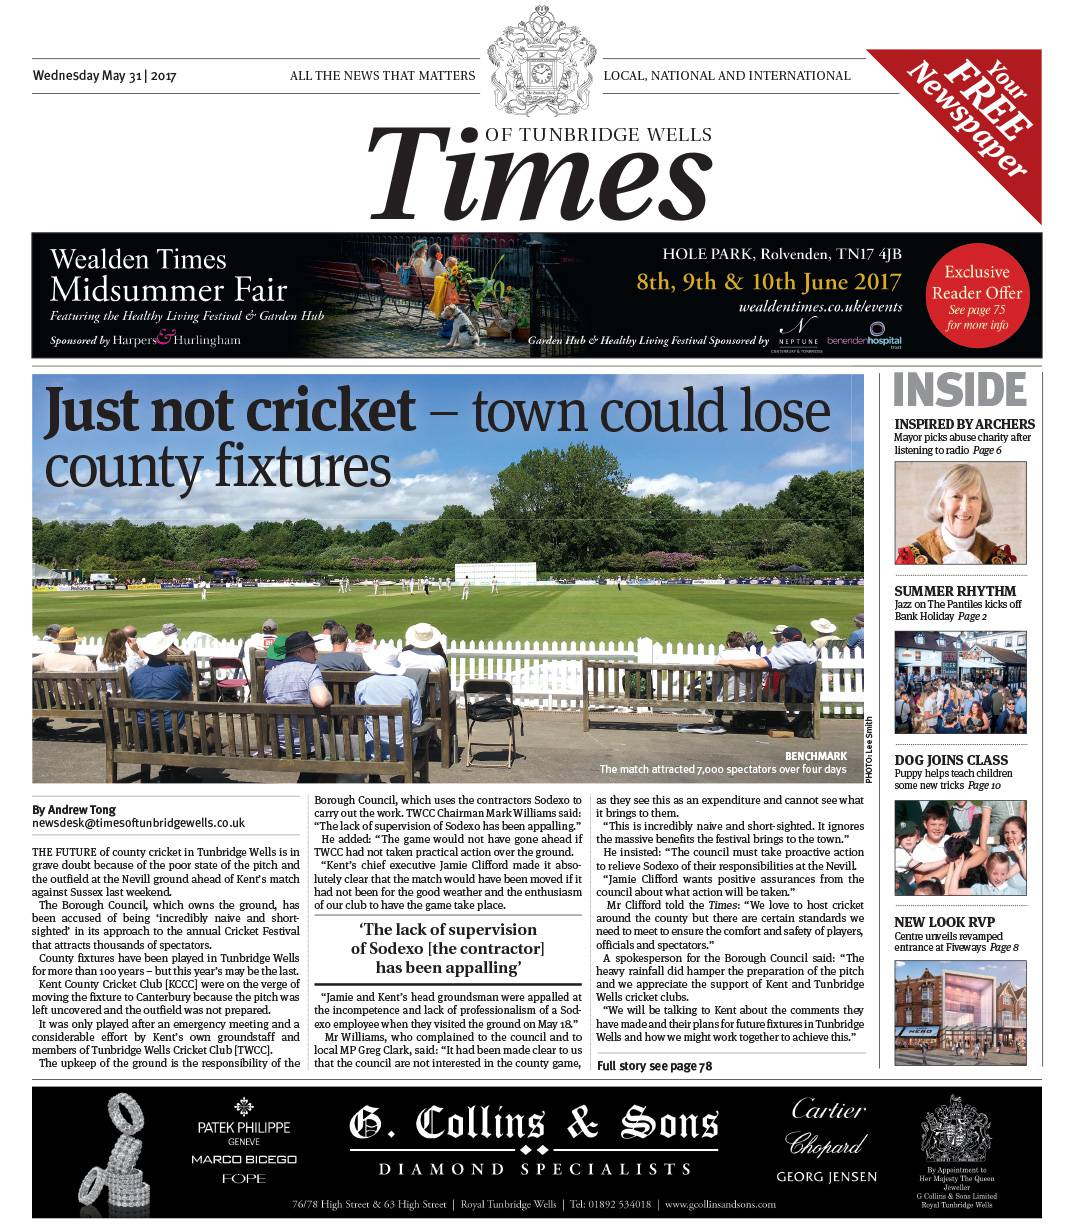 Read the Times of Tunbridge Wells 31st May 2017